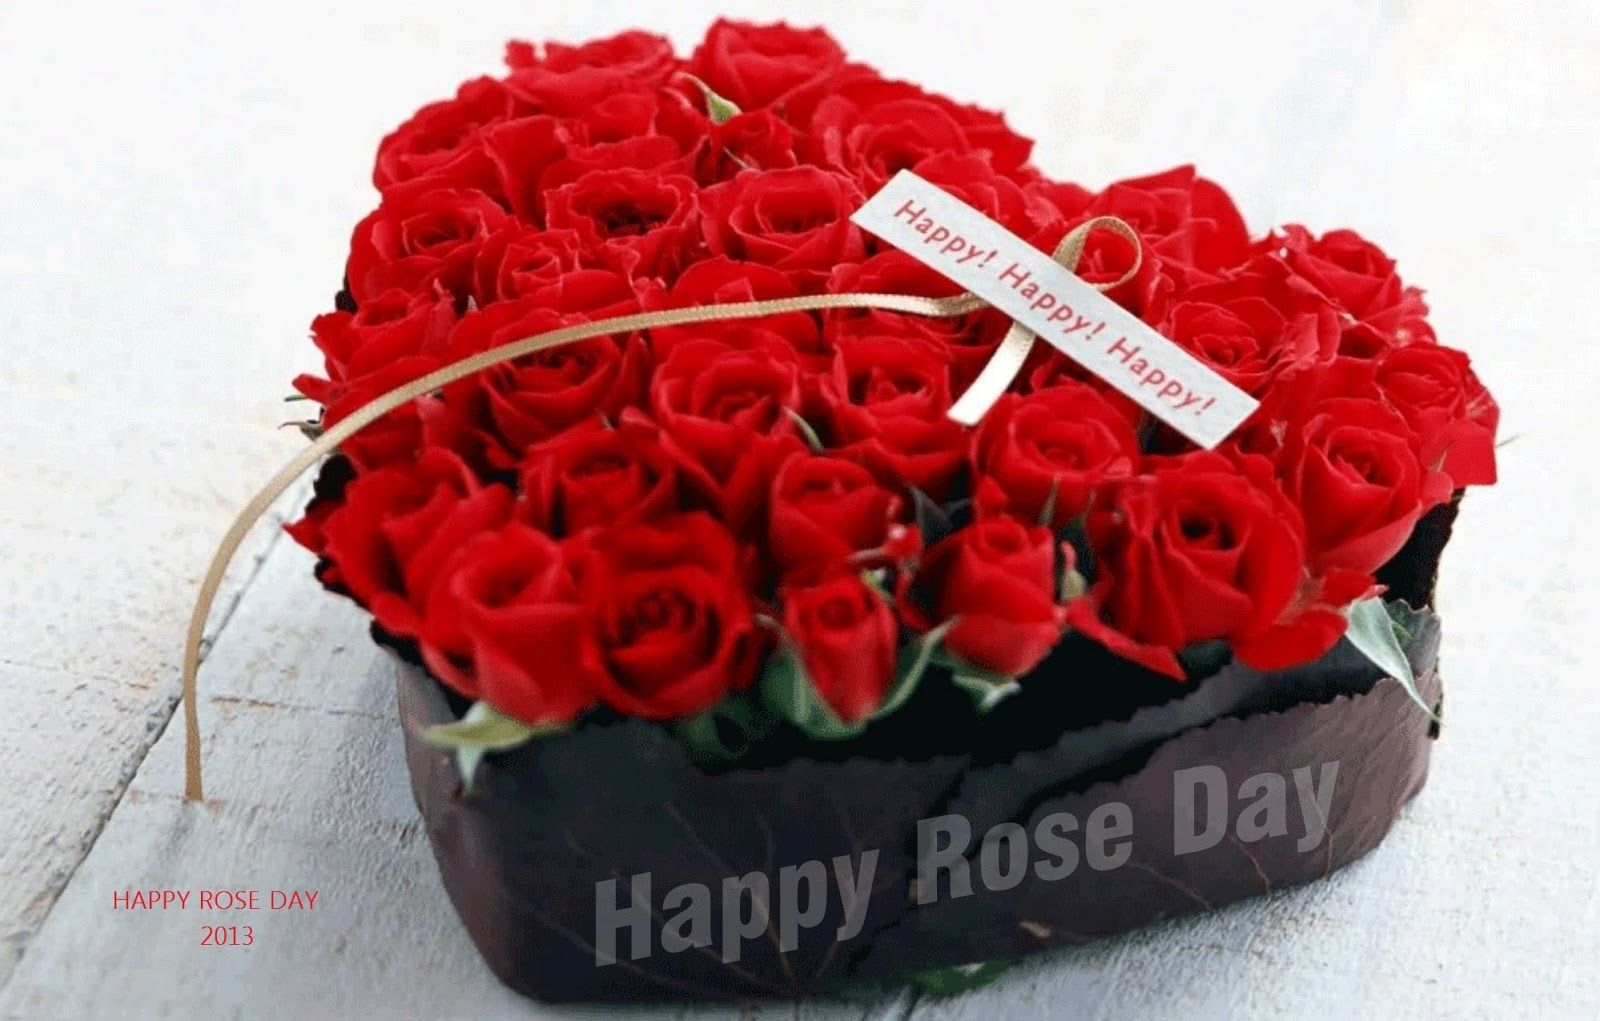 rose day images for friendship Happy rose day wallpaper